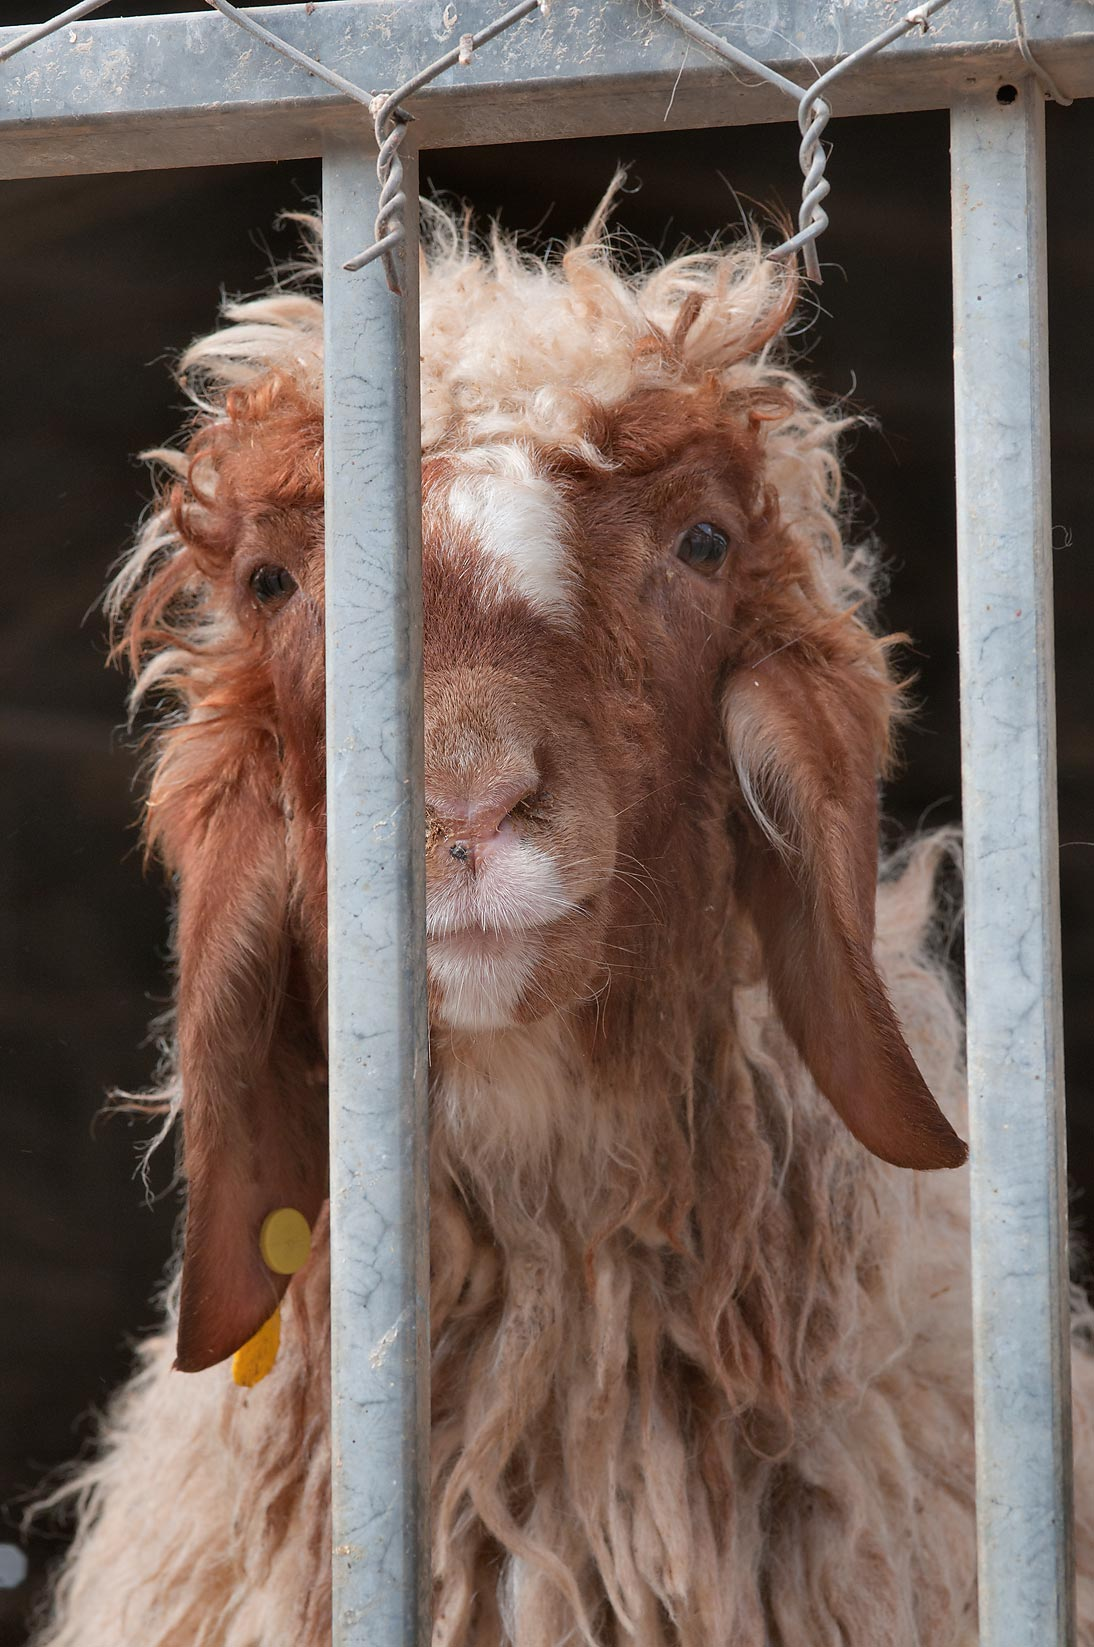 Brown goat behind bars in Sheep Market, Wholesale Markets area. Doha, Qatar